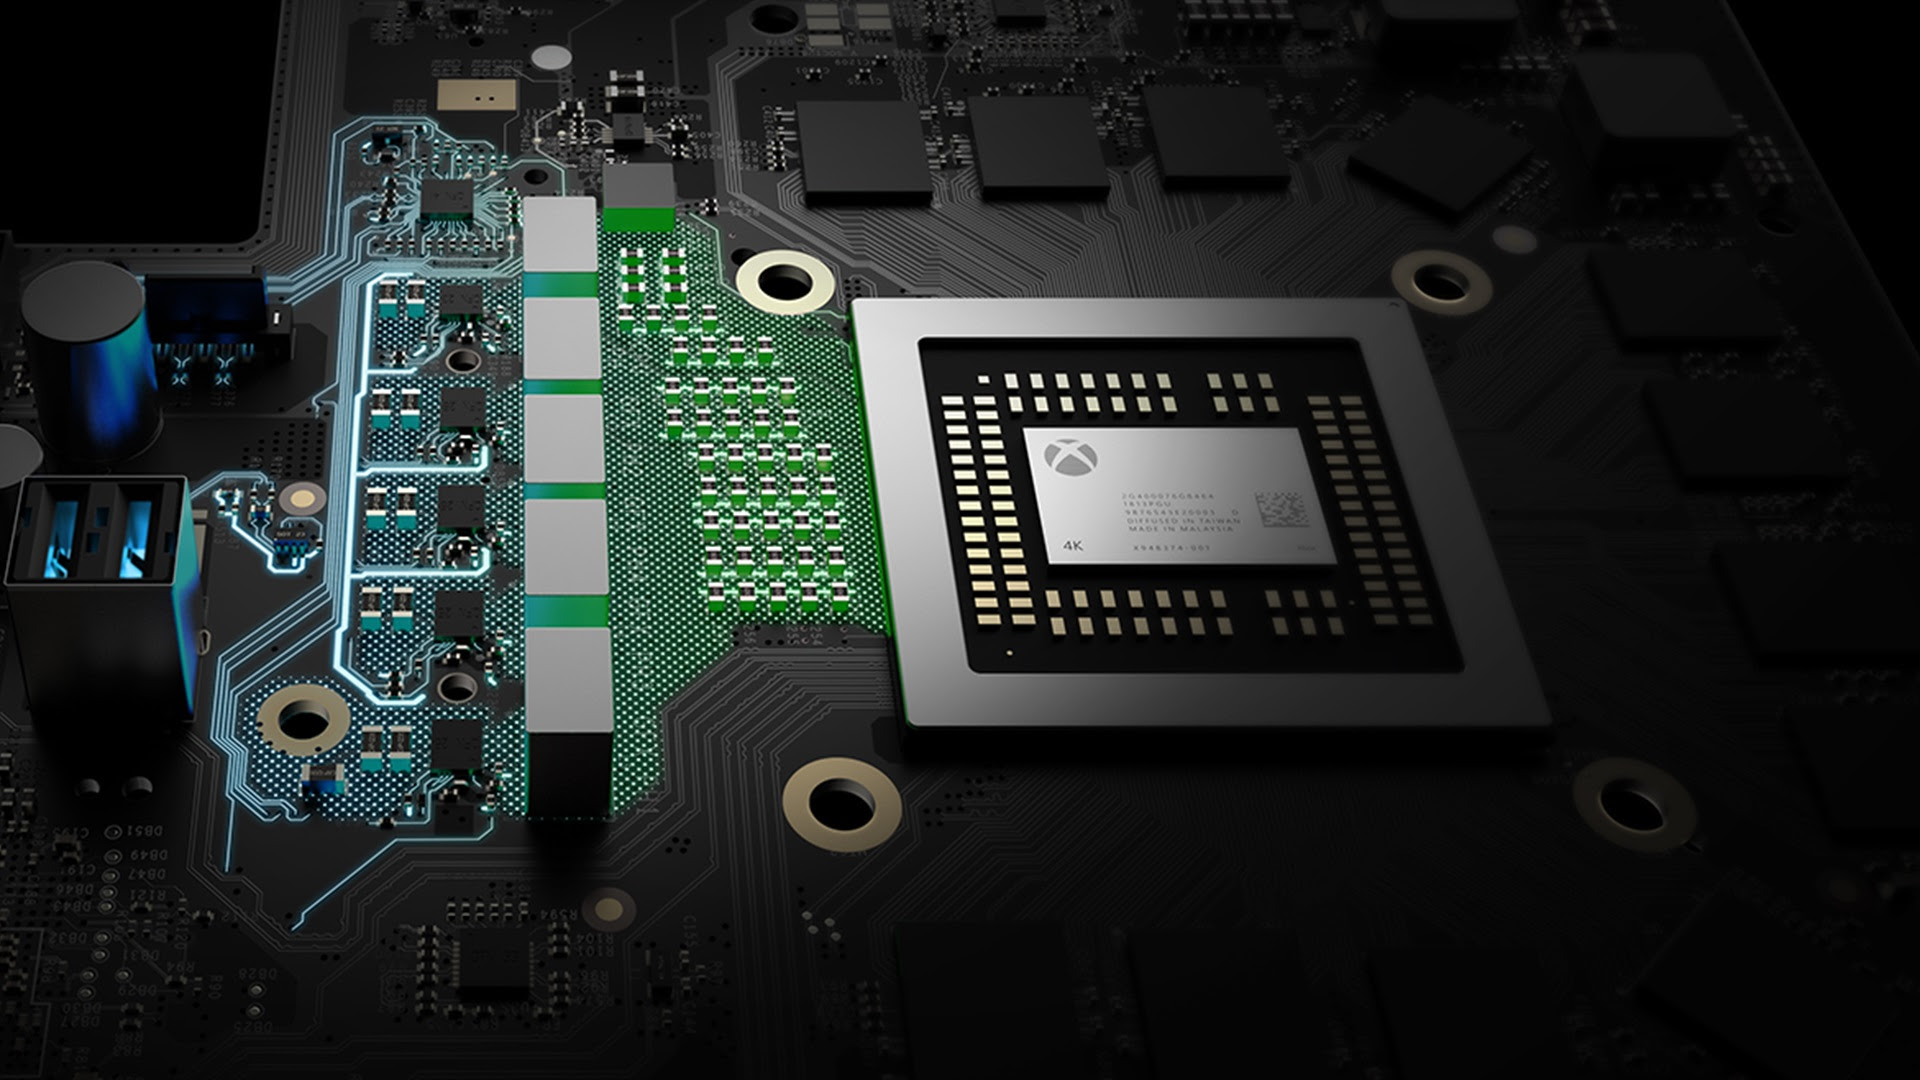 Project Scorpio teasers might reveal release date, and take jabs at PS4 Pro screenshot